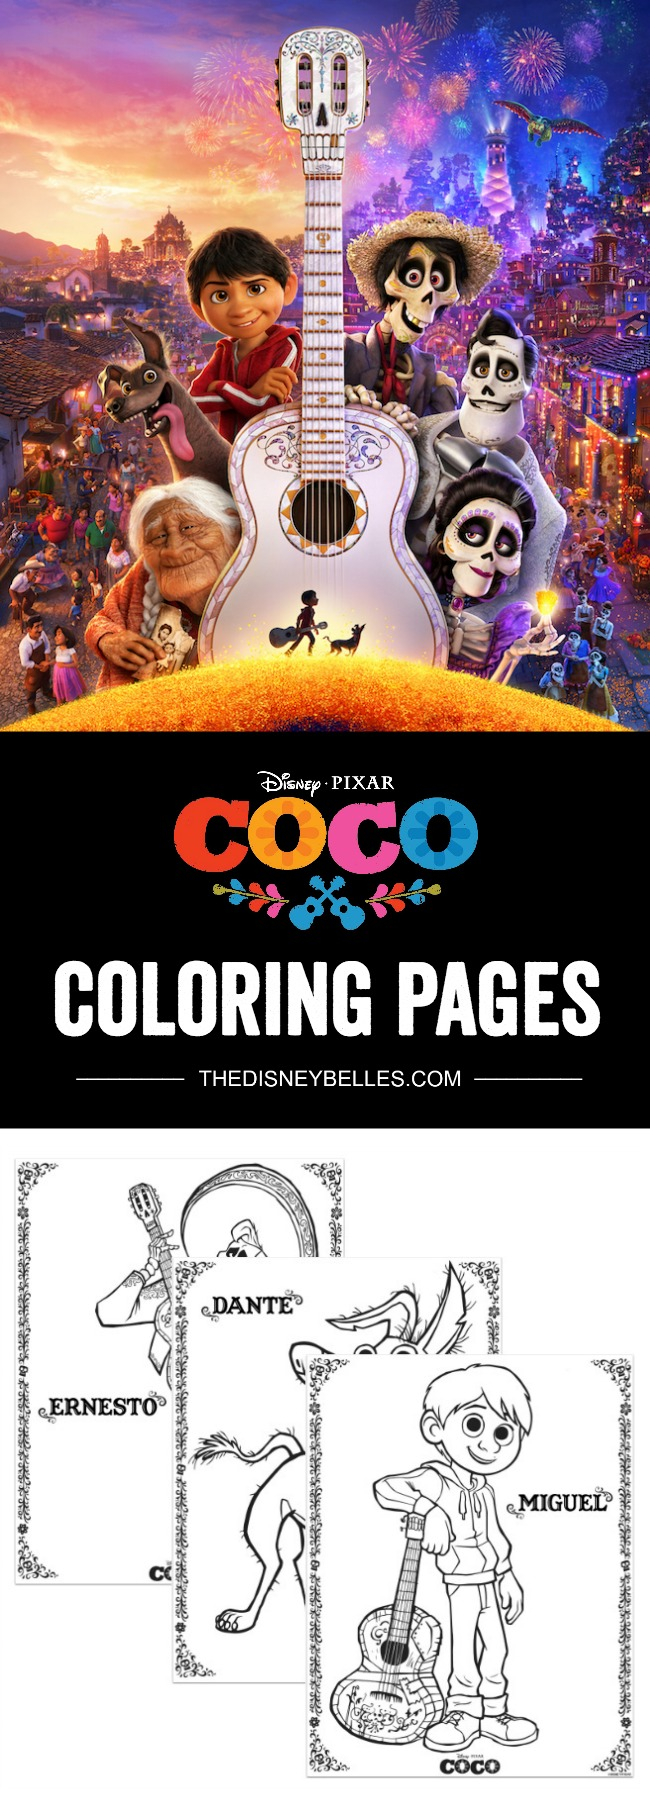 Are your kiddos looking forward to Disney Pixar's Coco - in theaters November 22nd? Download and print FREE Disney Pixar Coco Coloring Pages today!